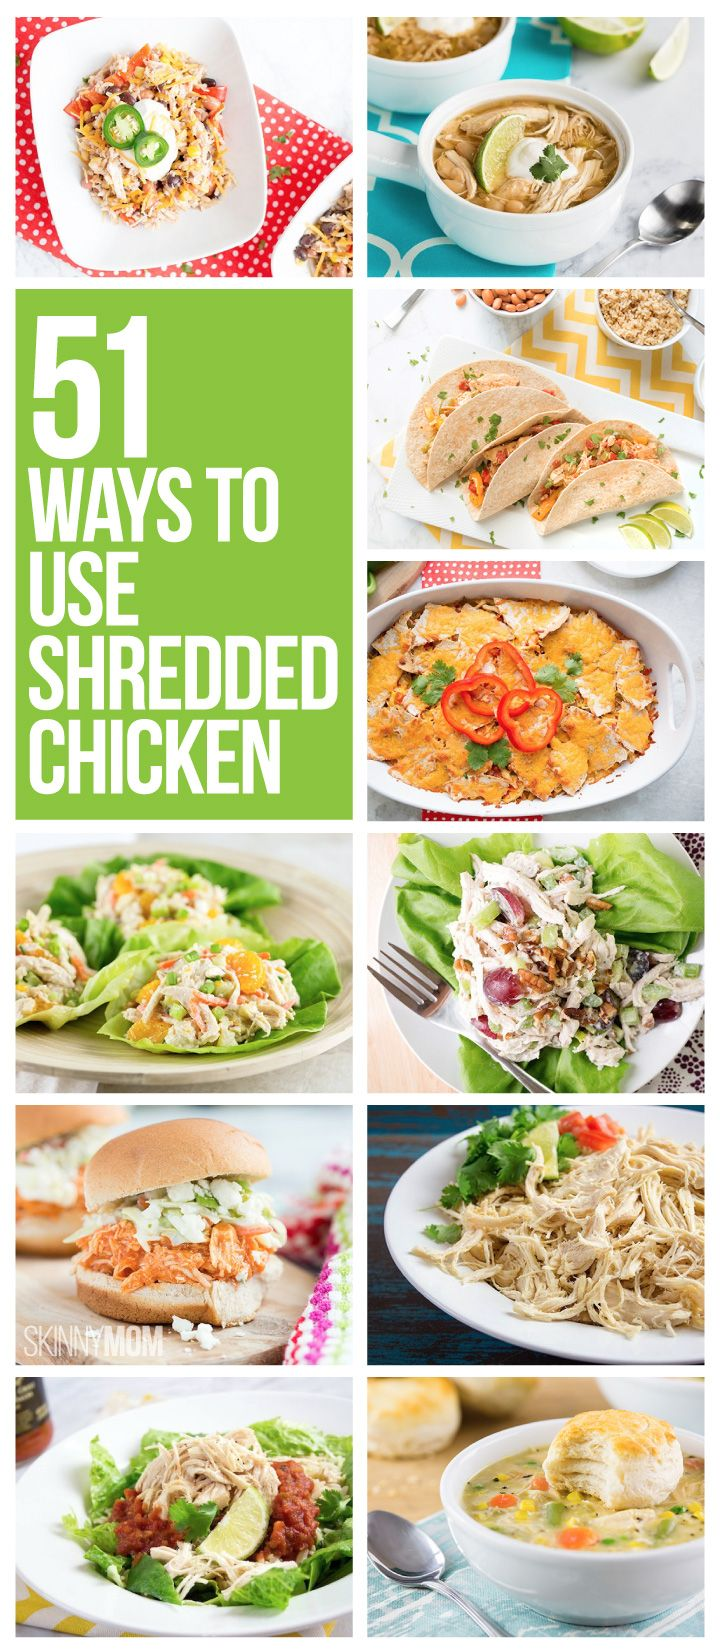 Have chicken-loving little ones? Serve these healthier meals!